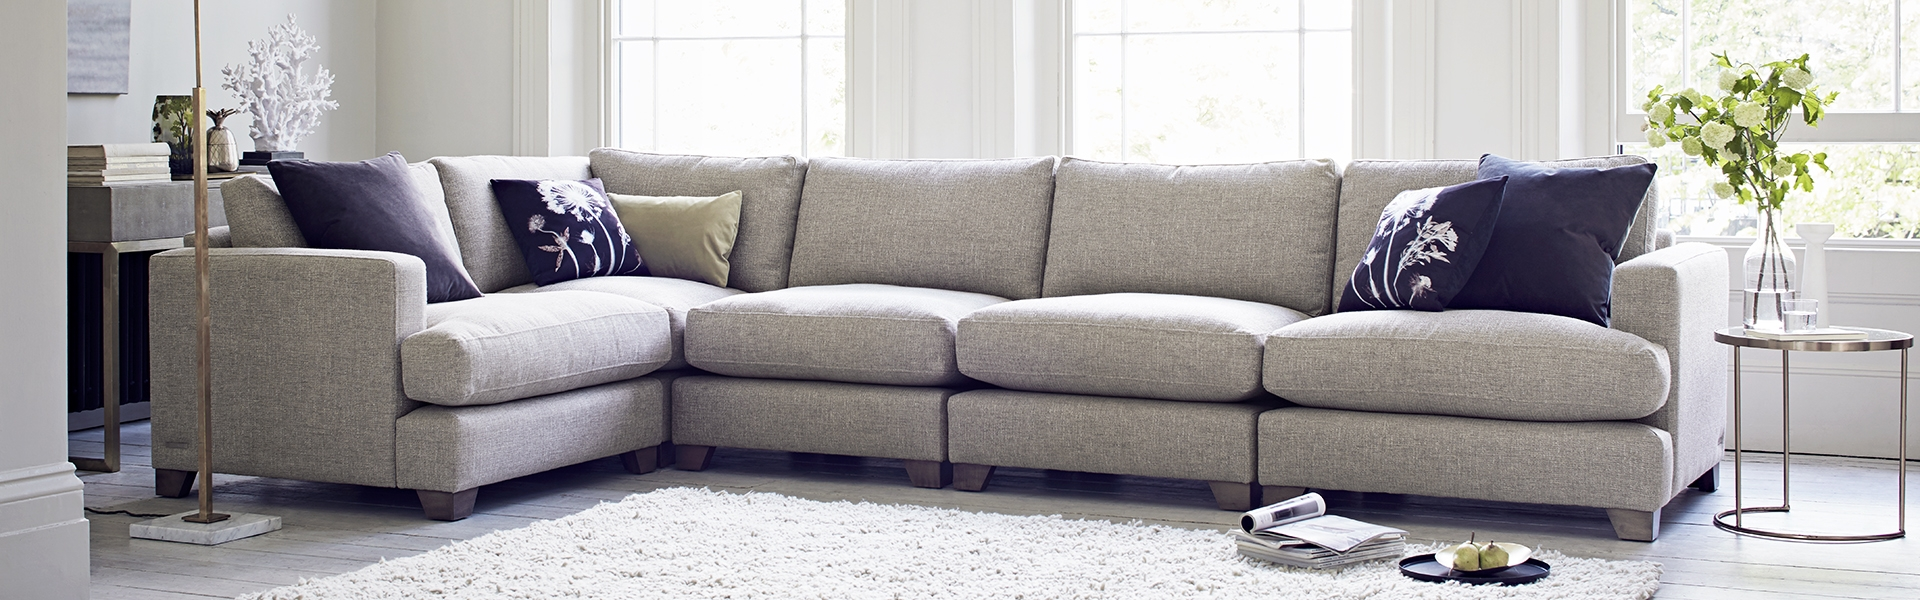 A Sofa Fit For The Family Within Family Sofa (#1 of 12)